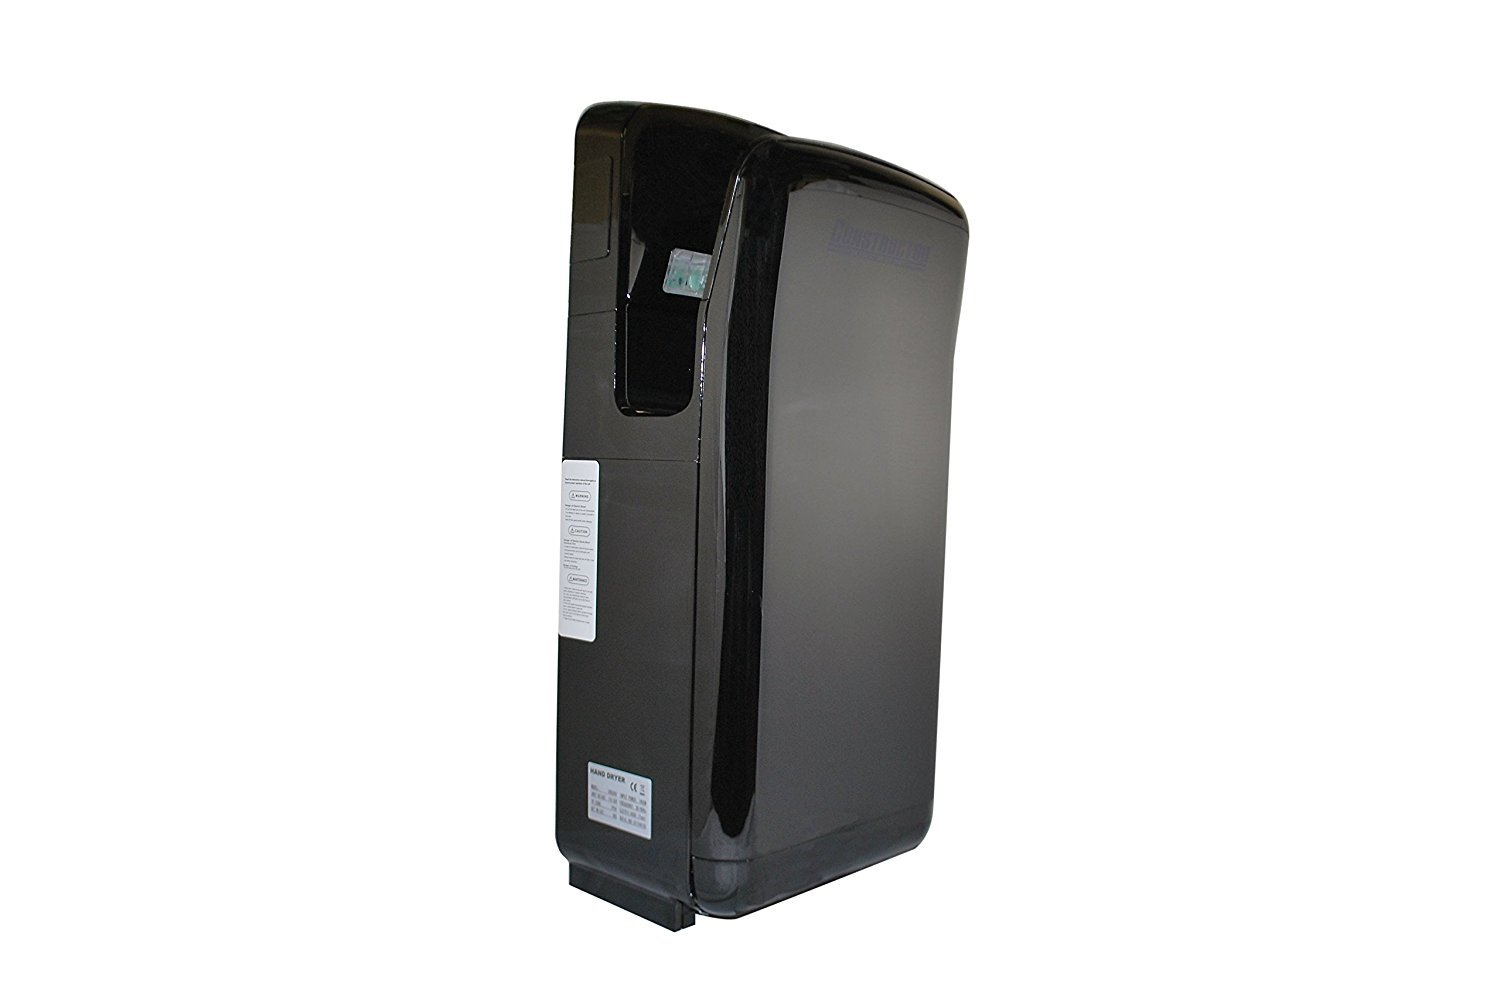 CONSTRUCTOR Automatic High Speed Commercial 1900W Durable Hand Dryer with Infrared Sensor - Black